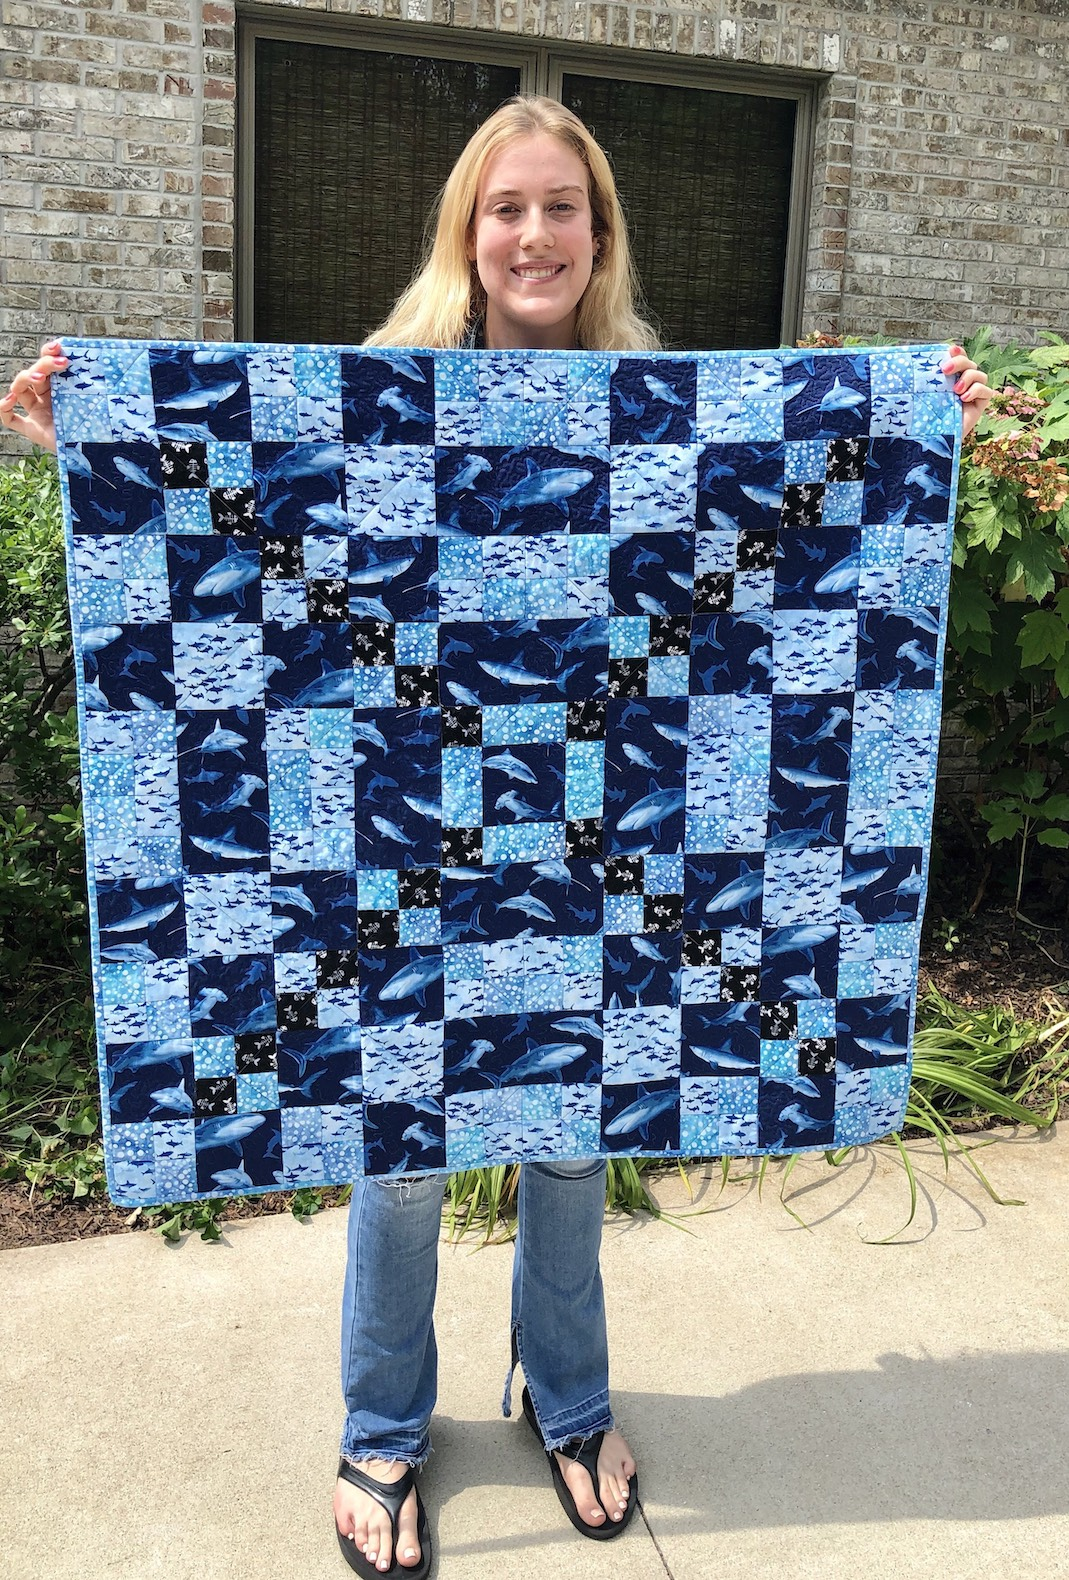 Winona and her Shark baby quilt for Junia.